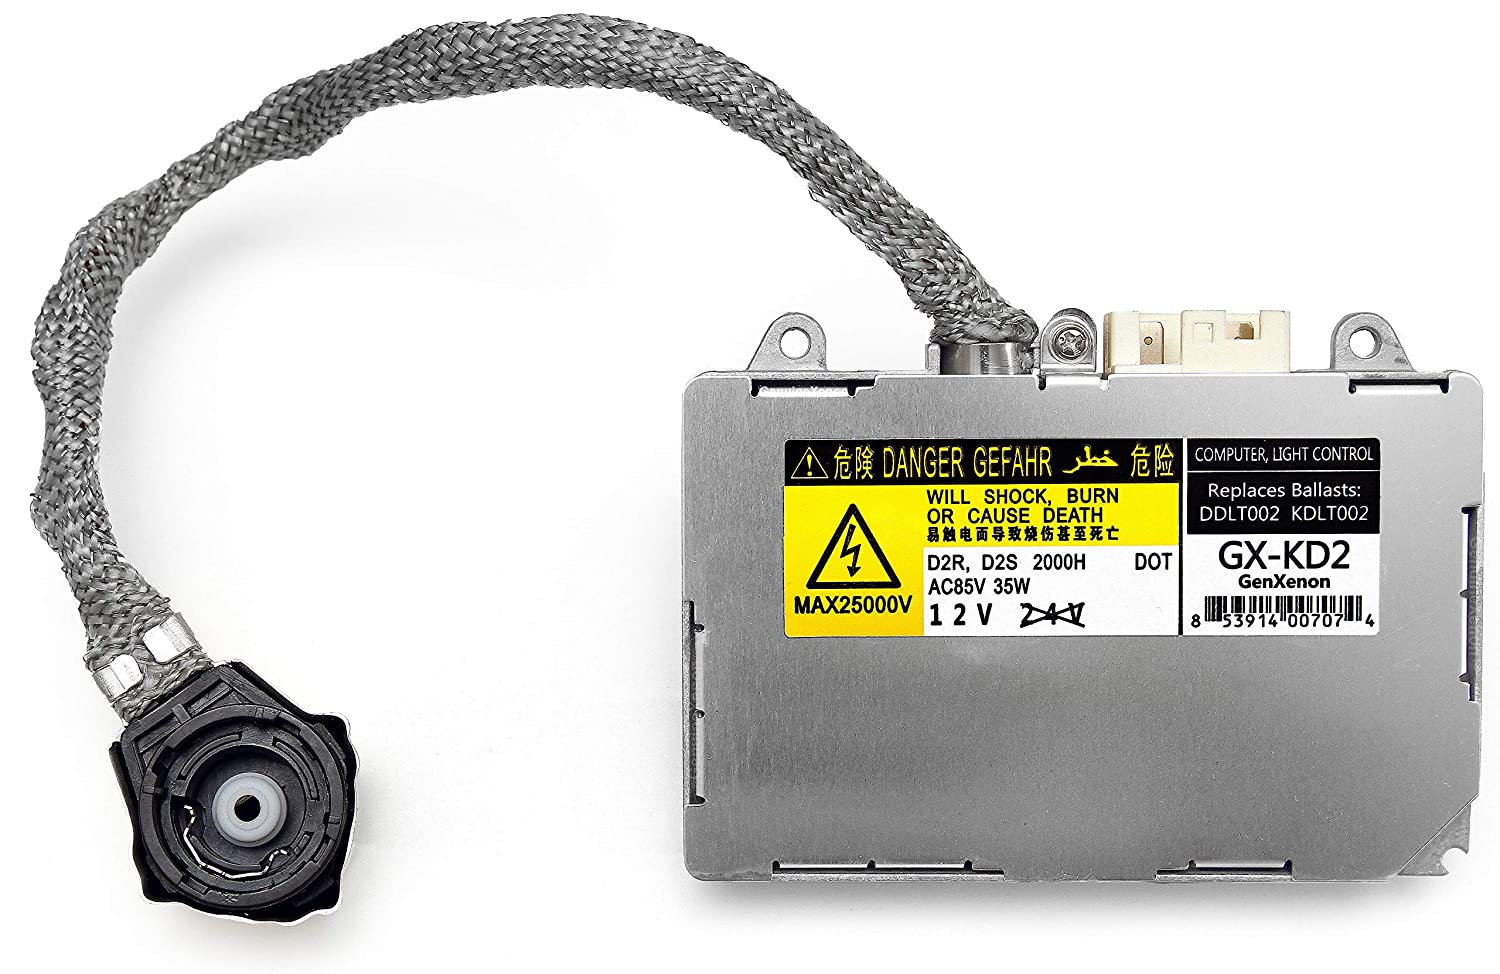 Replacement for Toyota and Lexus Xenon HID Ballast Headlight Control Unit KDLT002 DDLT002 85967-33010 /& Others 85967-50020 85967-30050